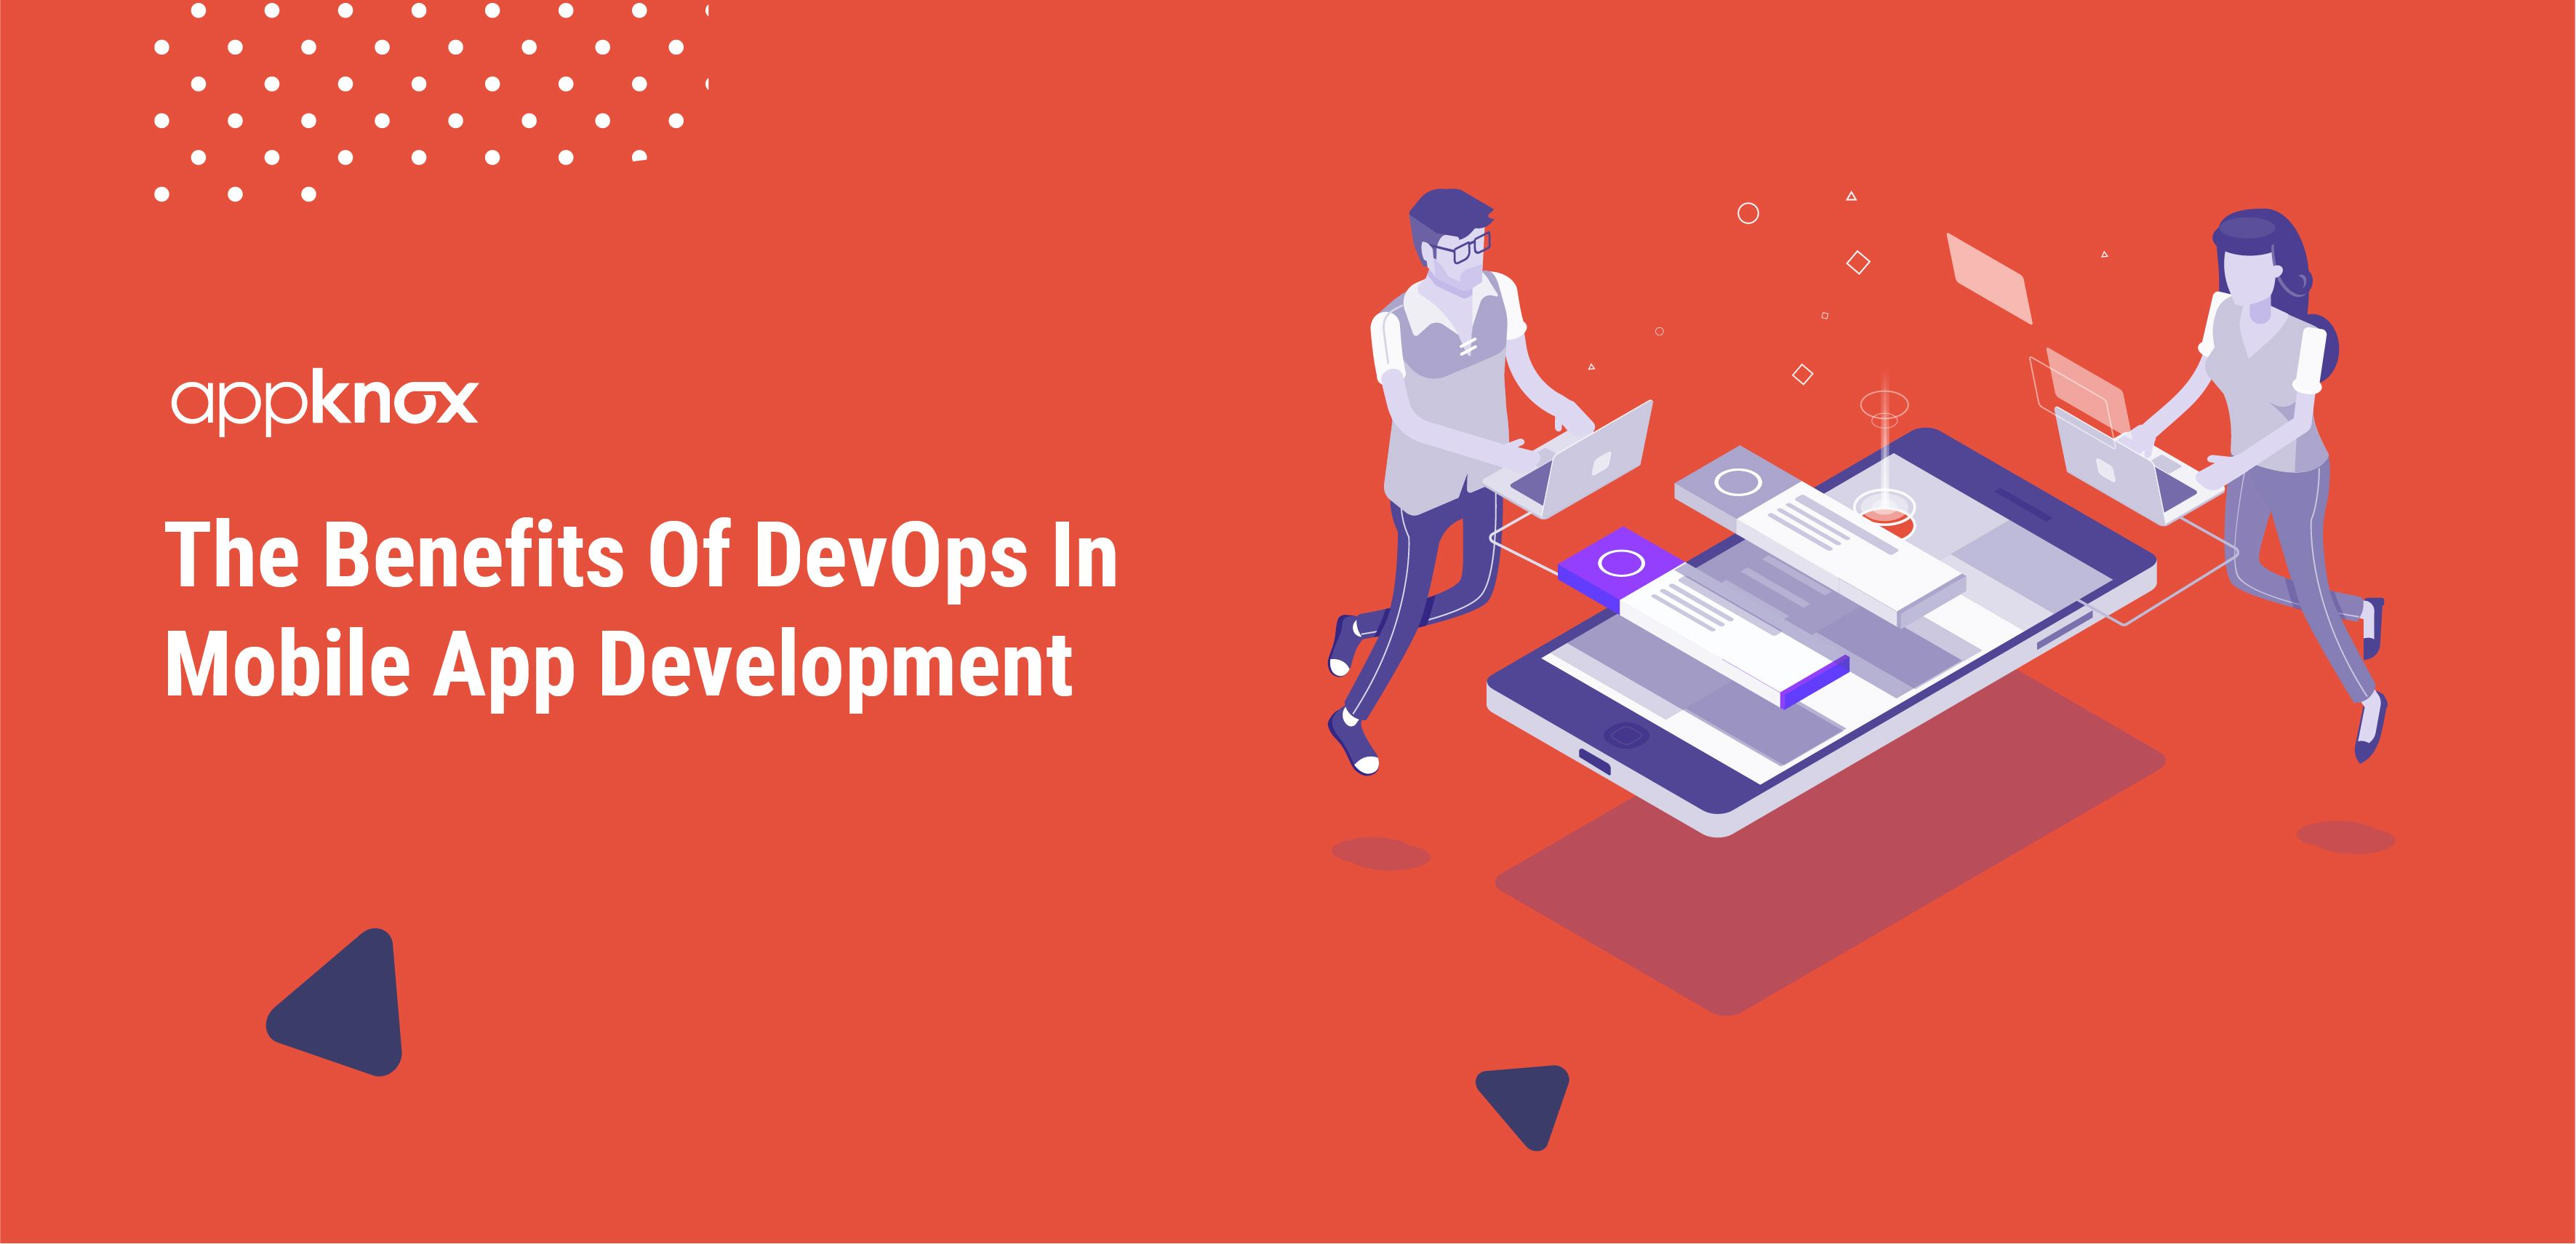 The Benefits Of DevOps In Mobile App Development